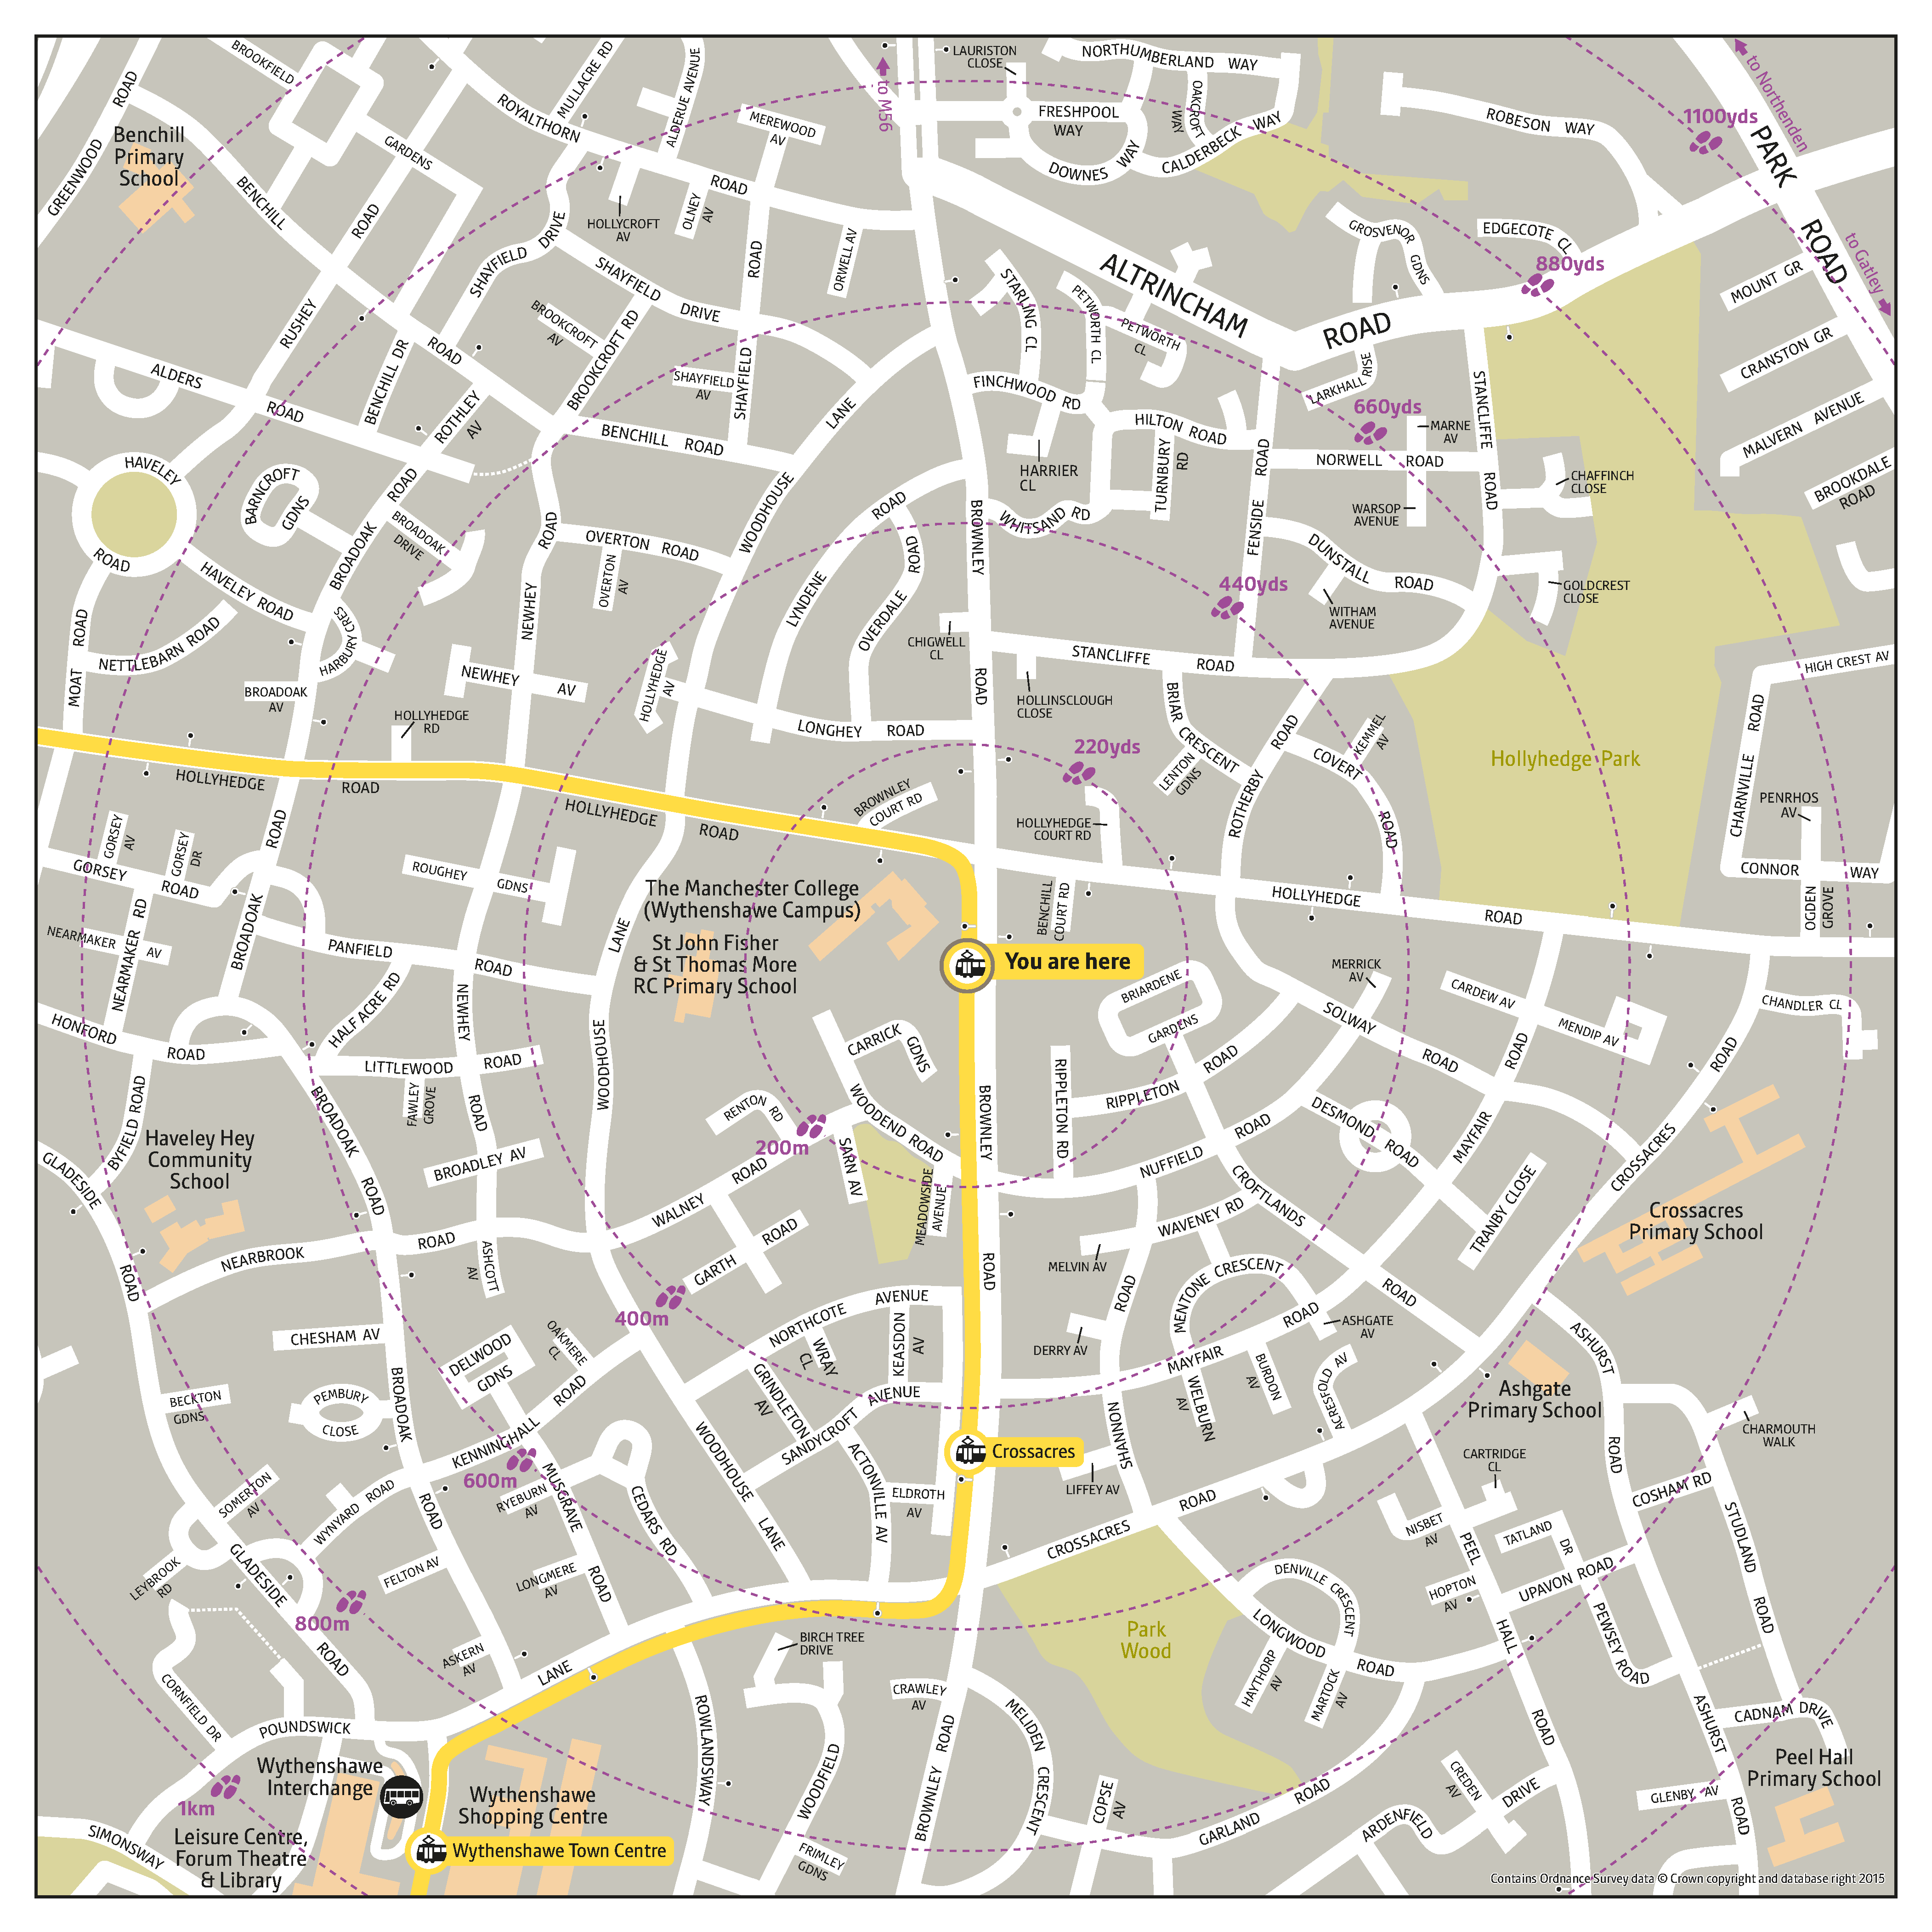 Local area map for Benchill tram stop